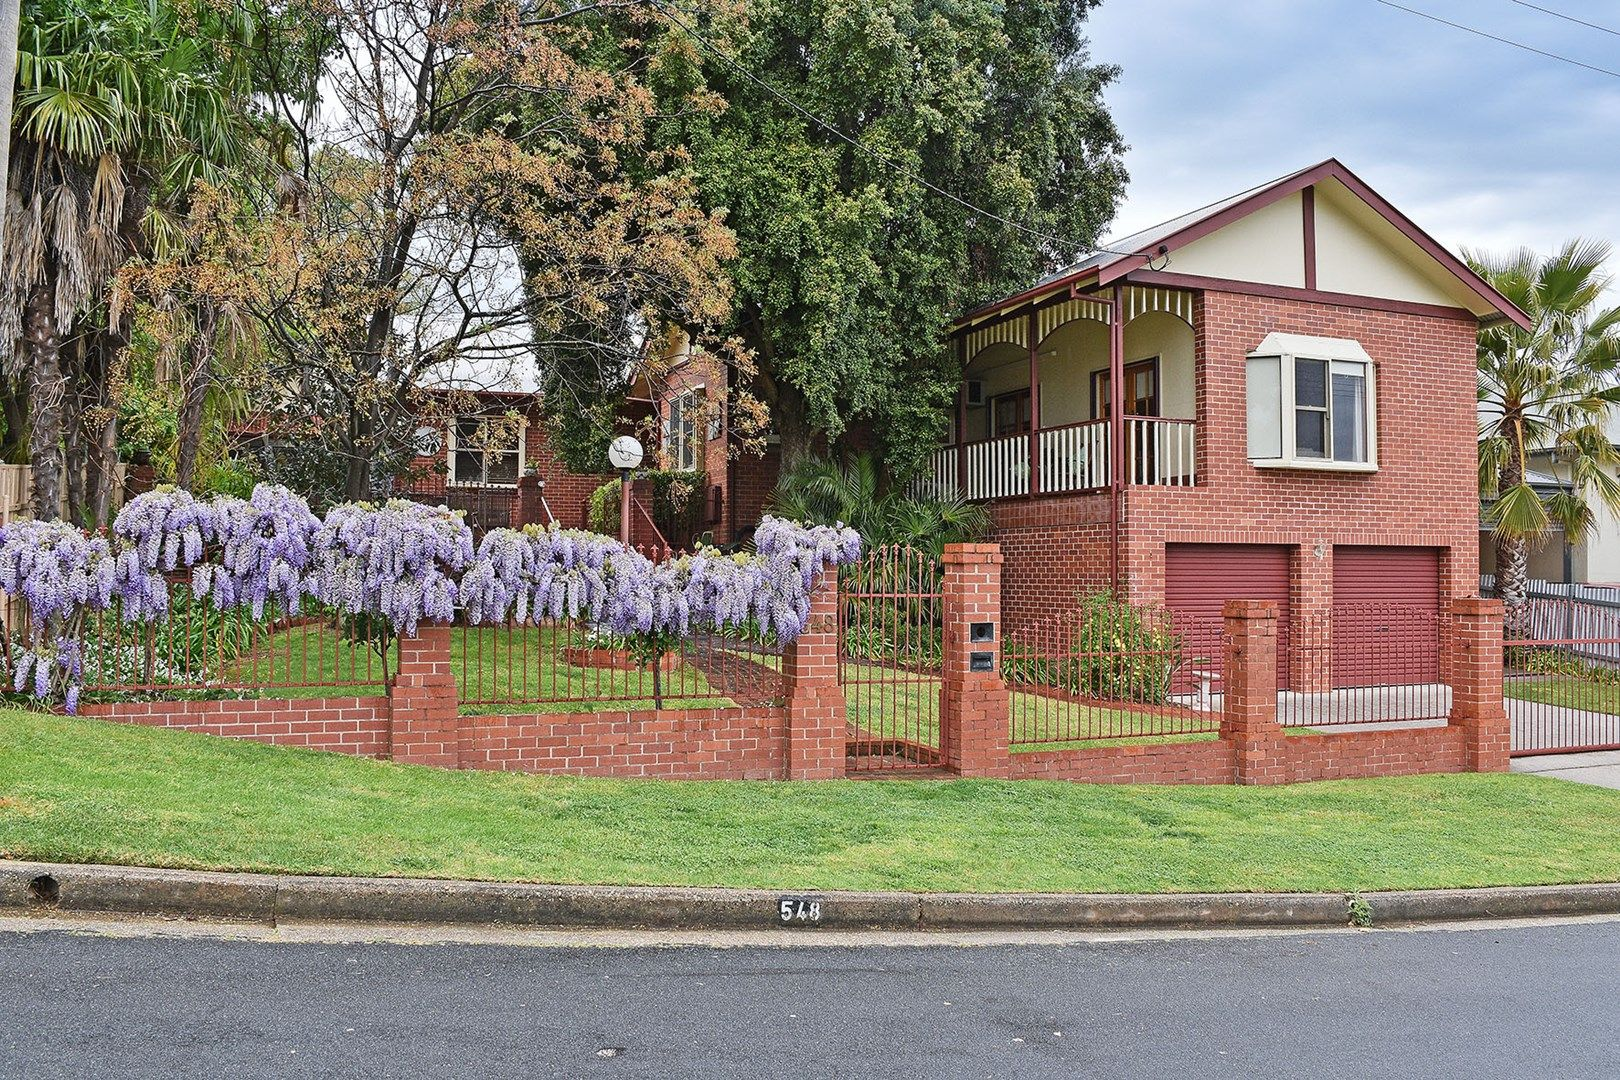 548 Tara  Avenue, East Albury NSW 2640, Image 0